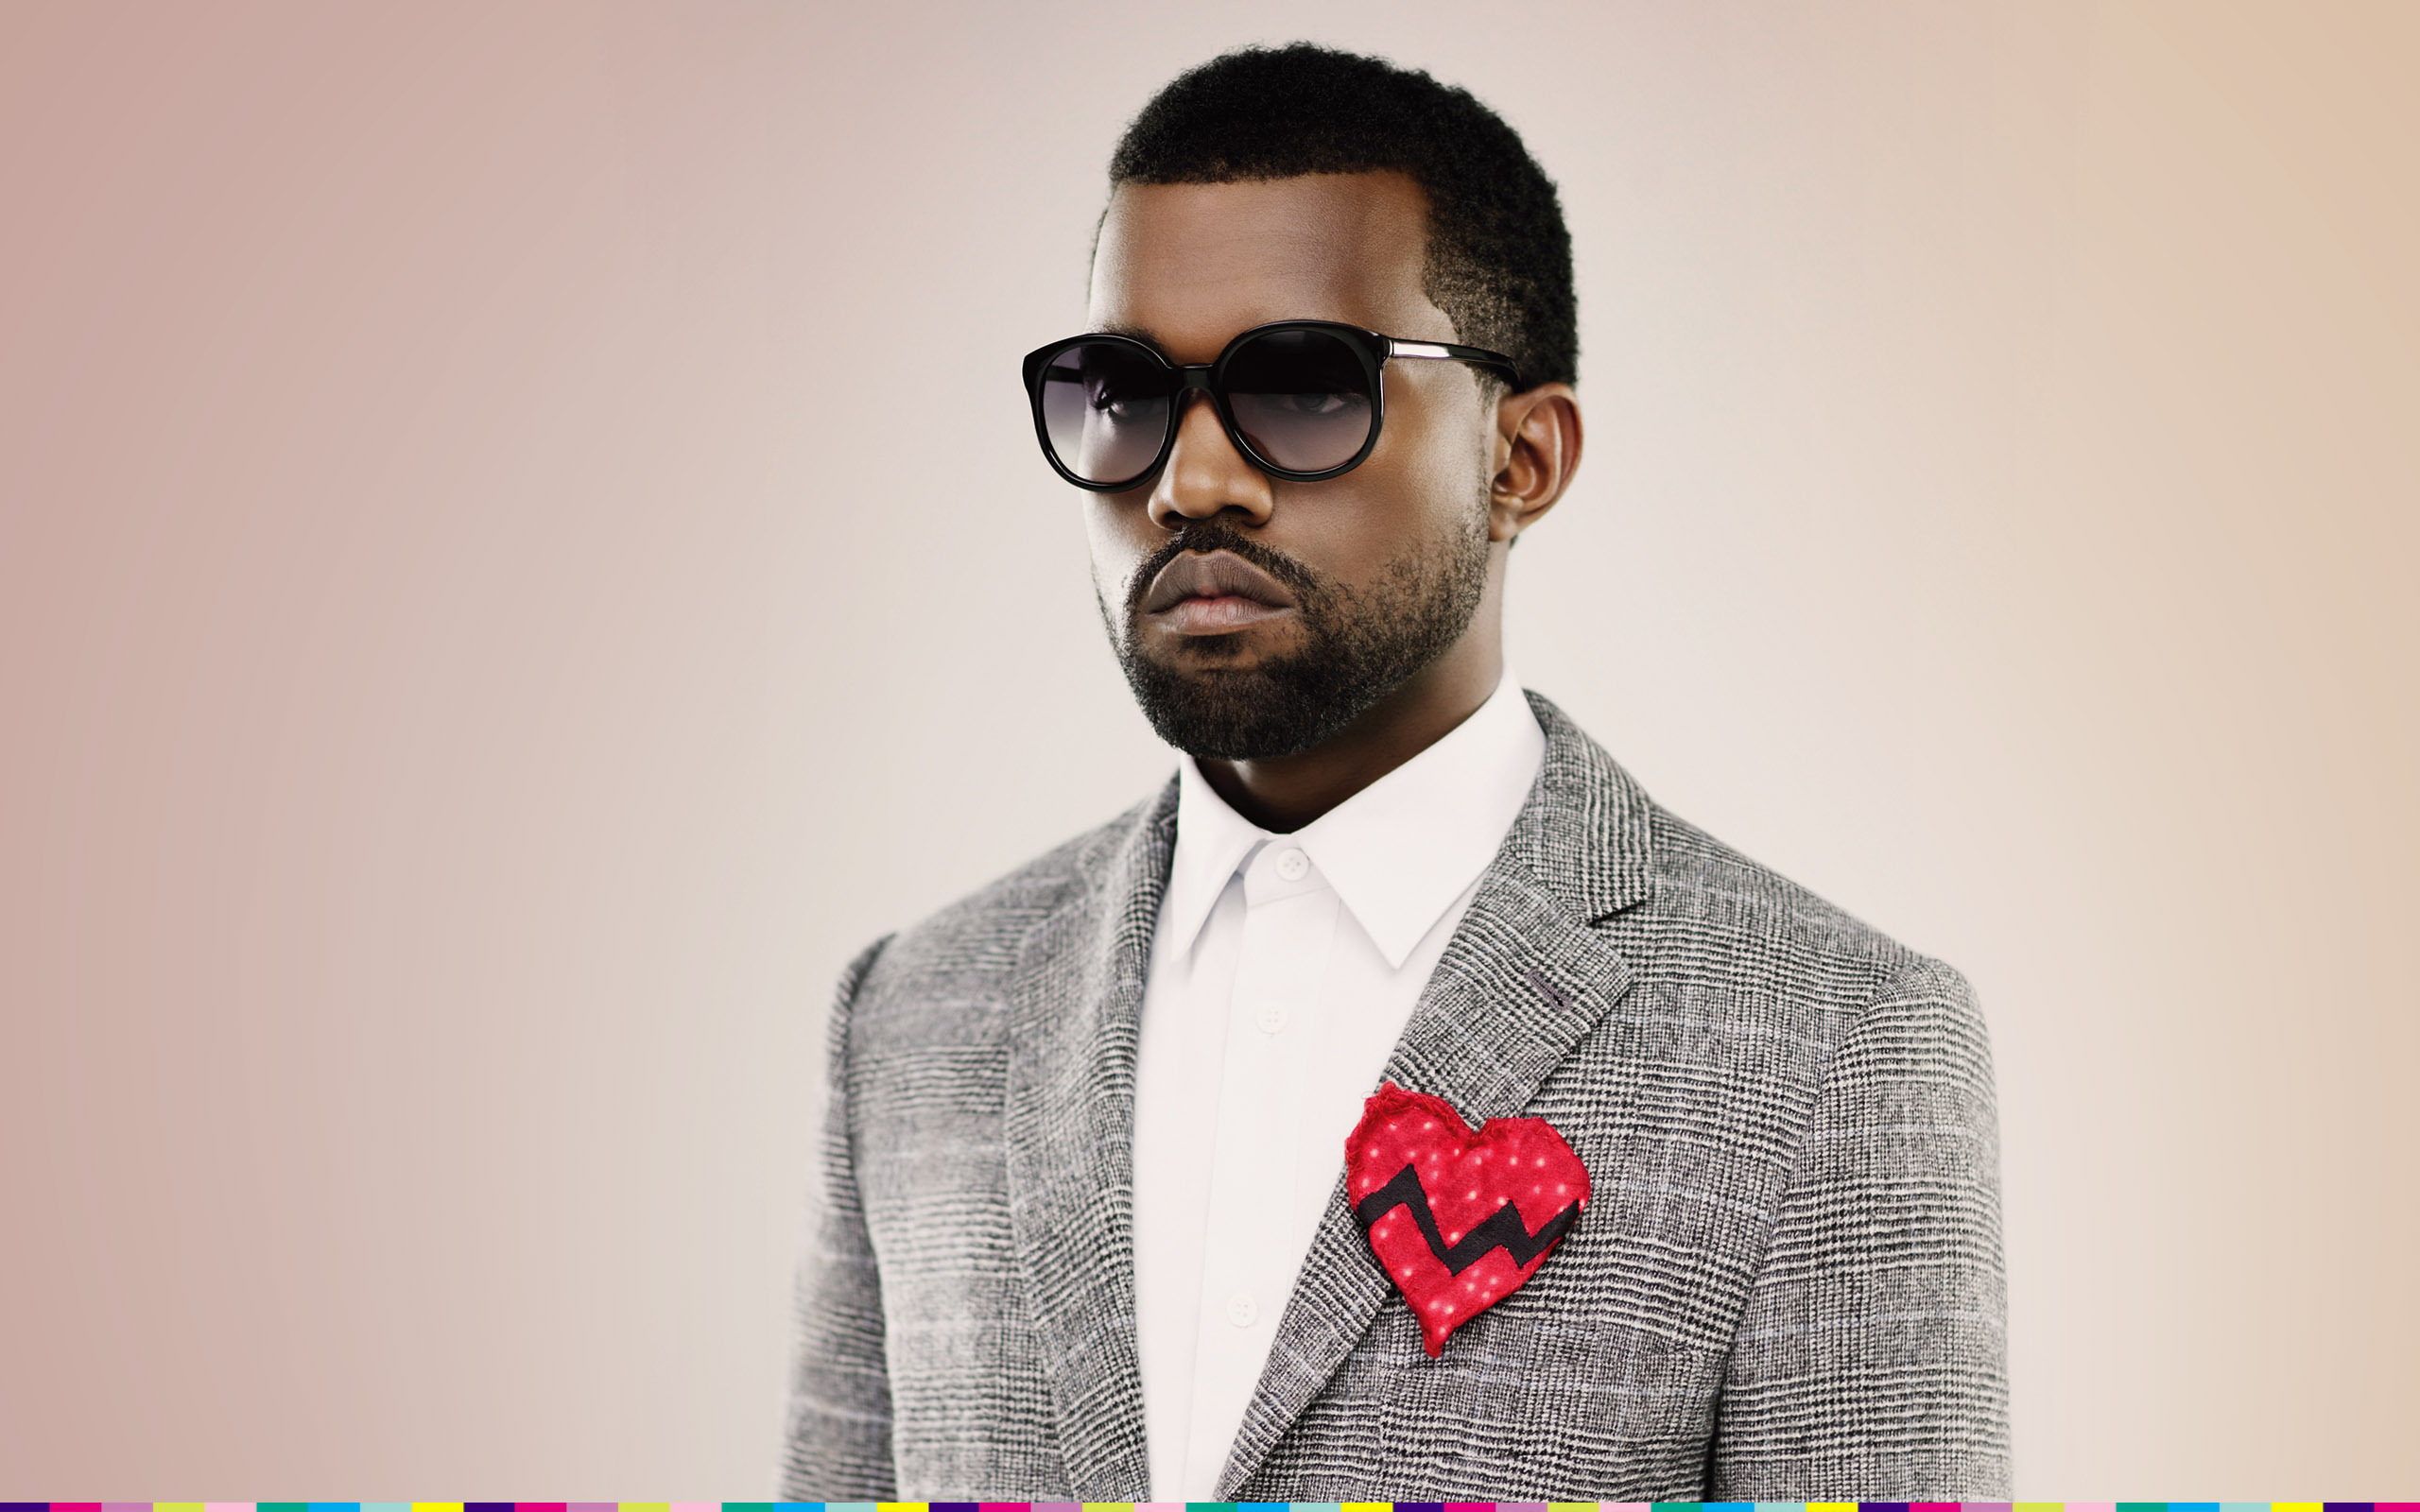 Rapper and fashion designer Kanye West was born on June 8 1977 in Atlanta He is the only child of Ray West a photojournalist exBlack Panther and